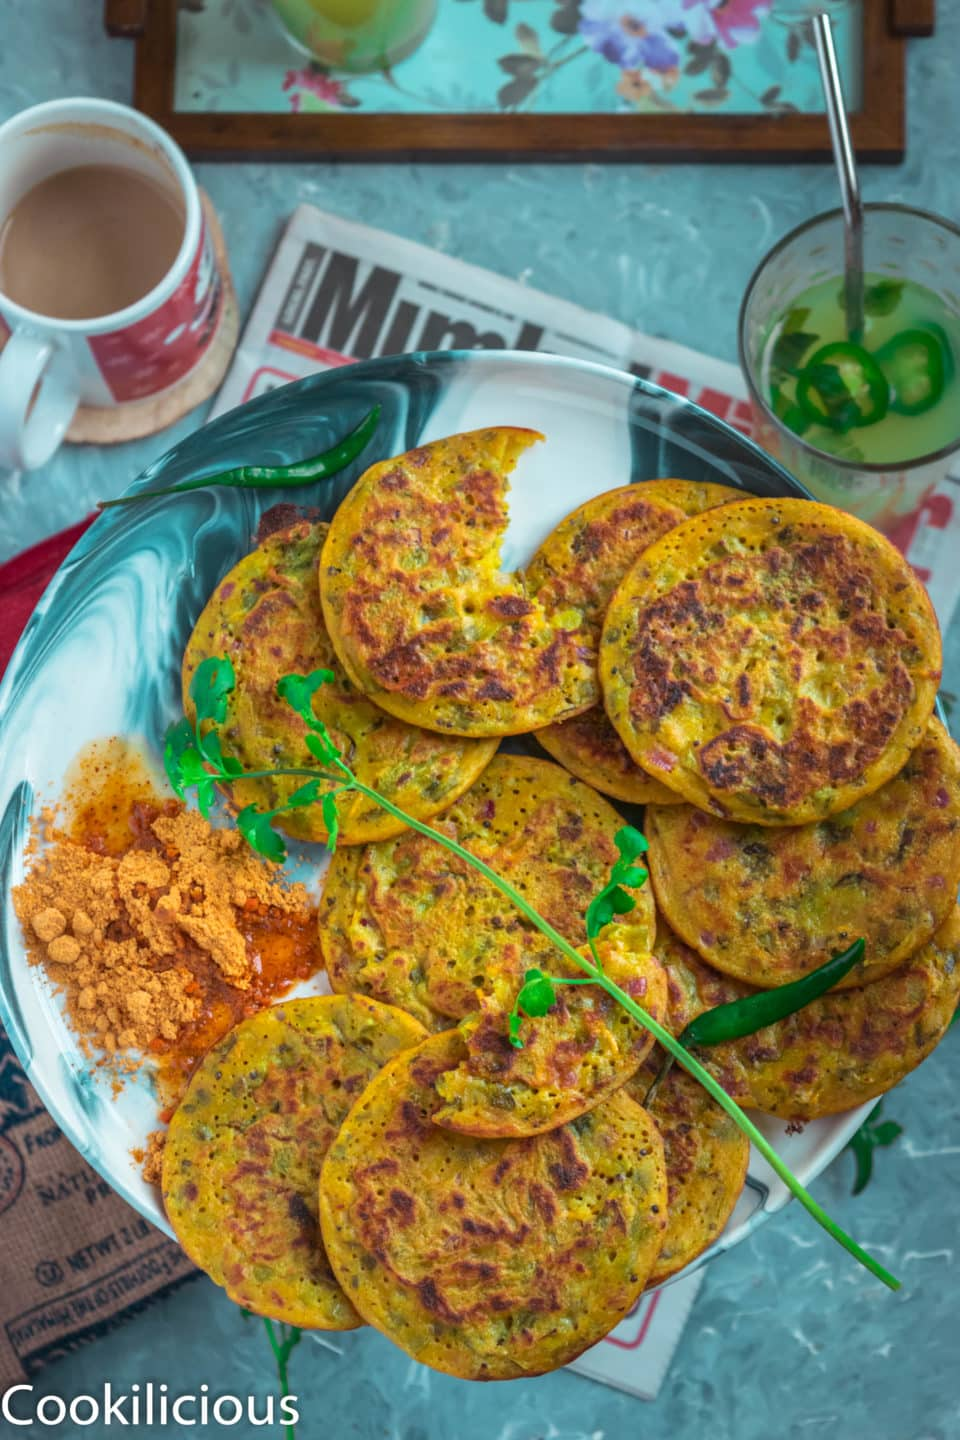 Mini Masala Uttapam served in a plate with molagopodi on the side